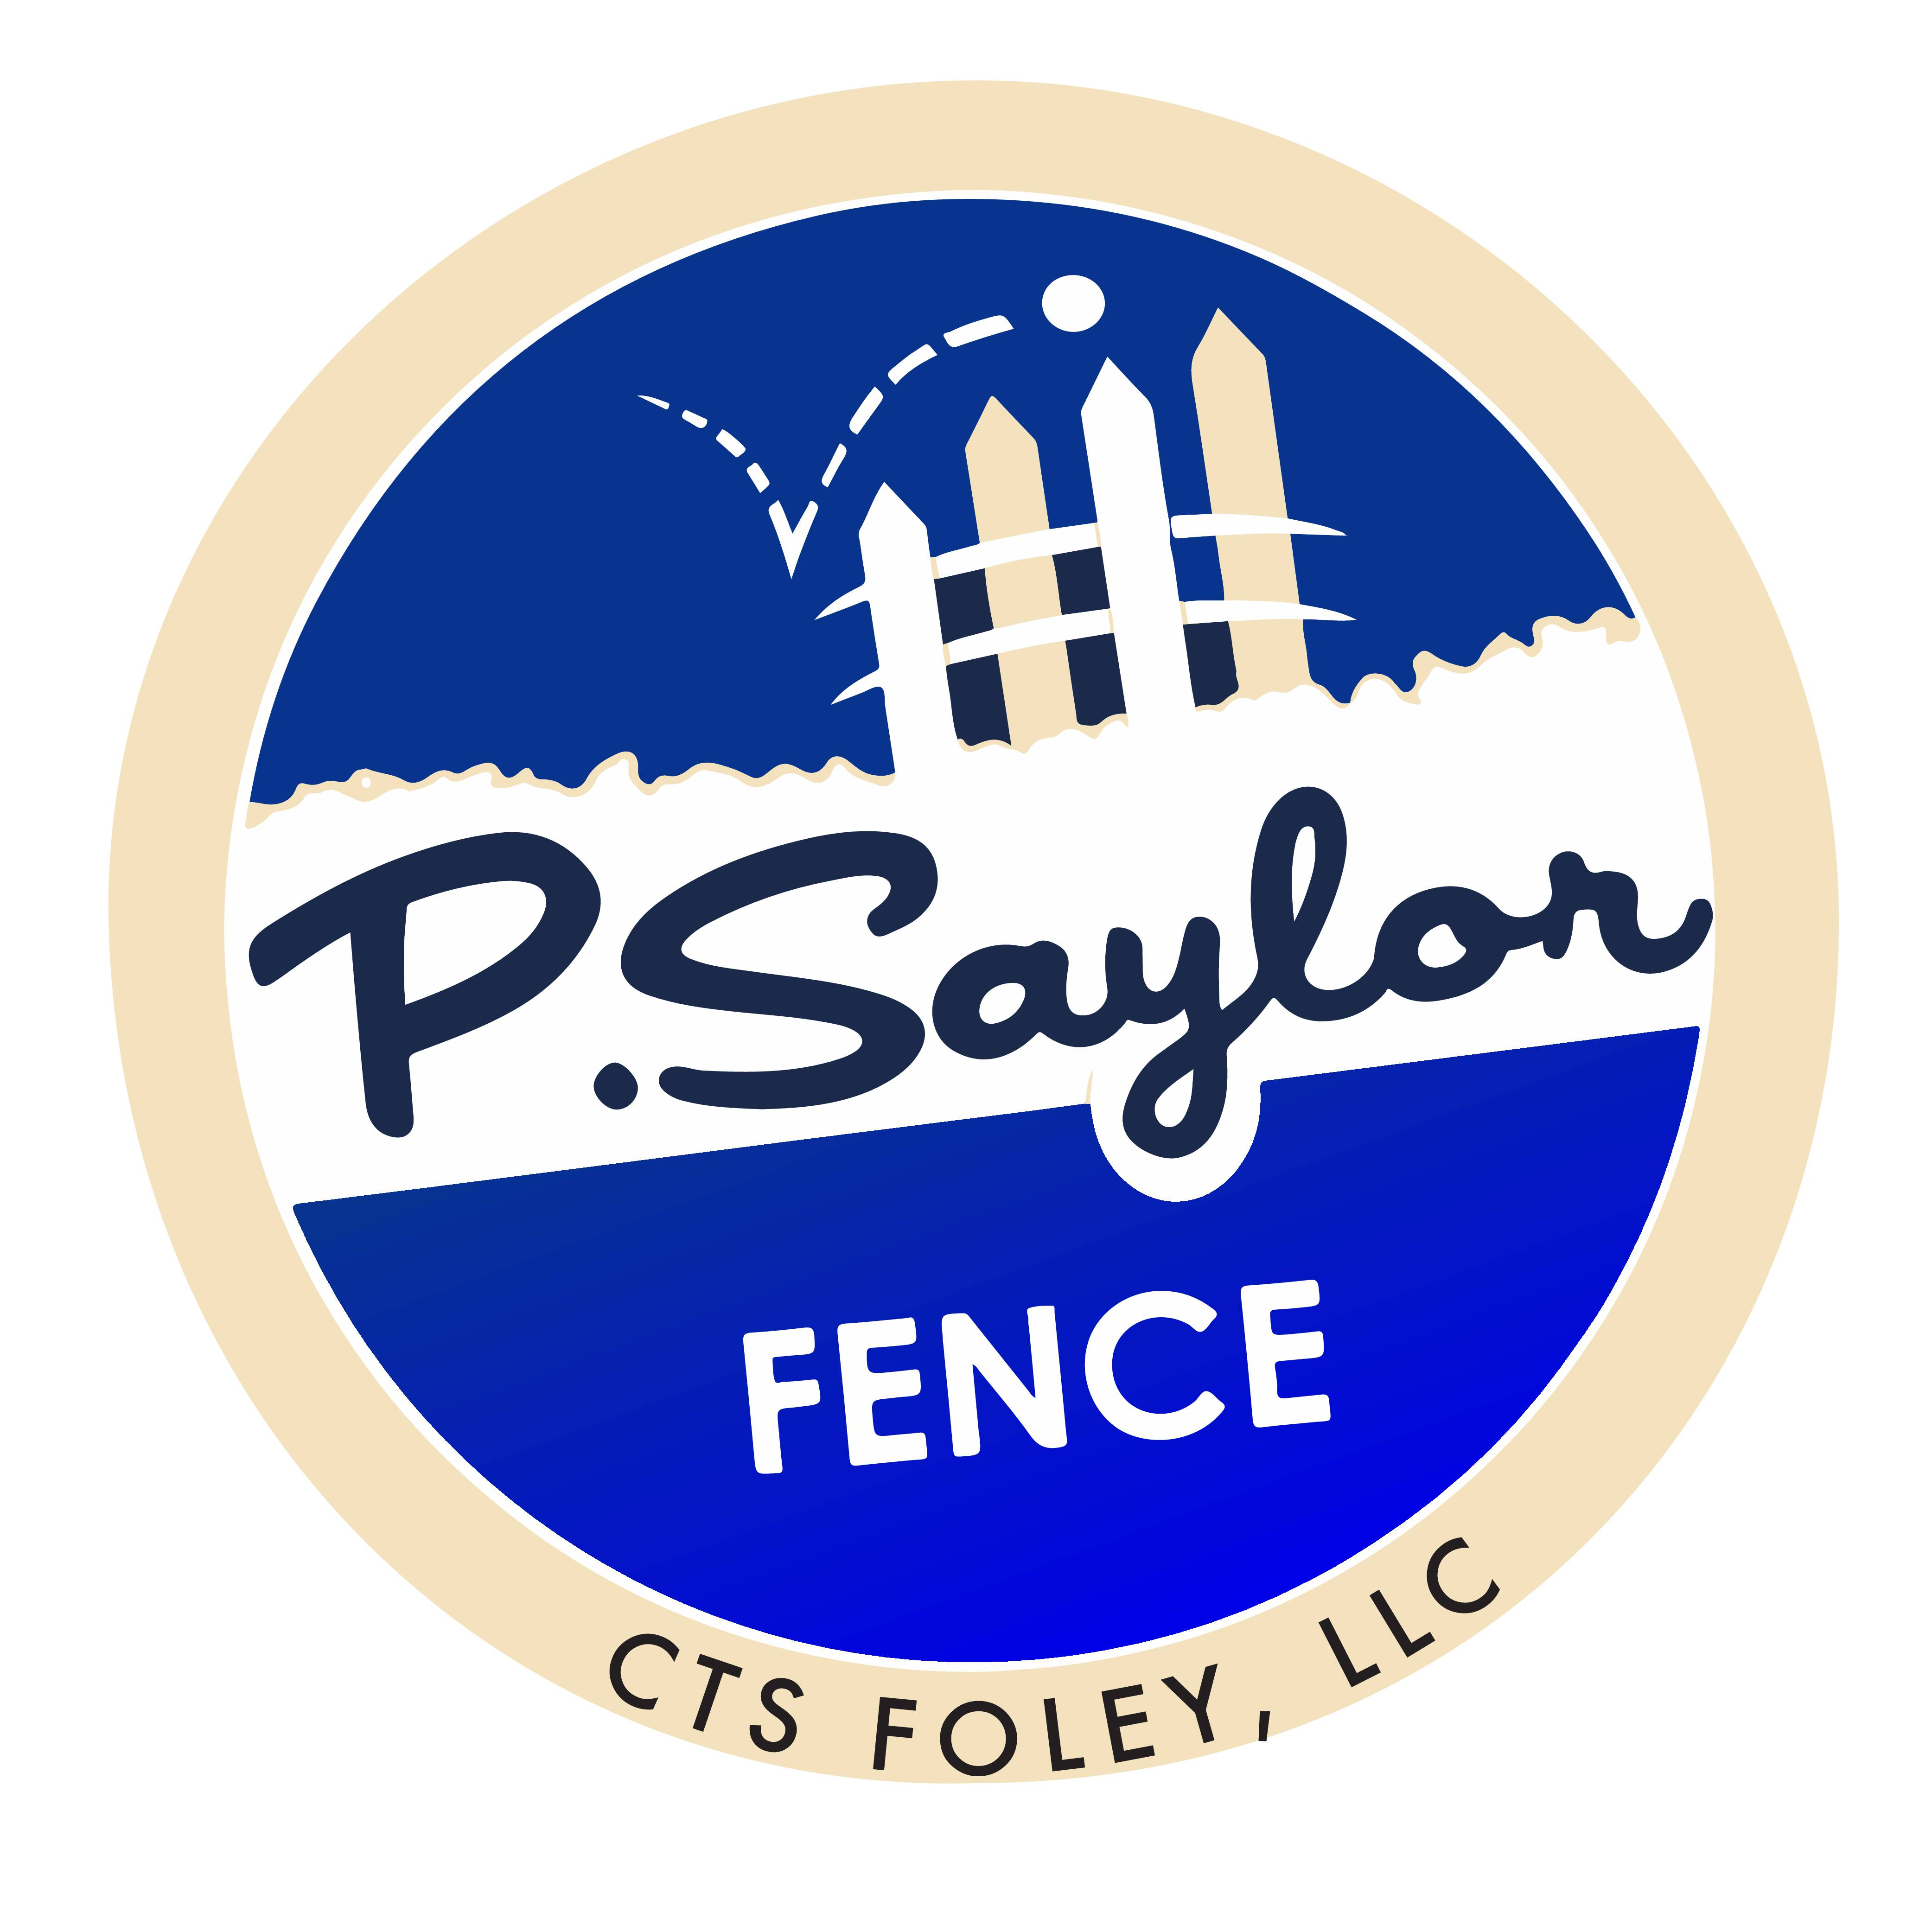 P Saylor Fence Co logo